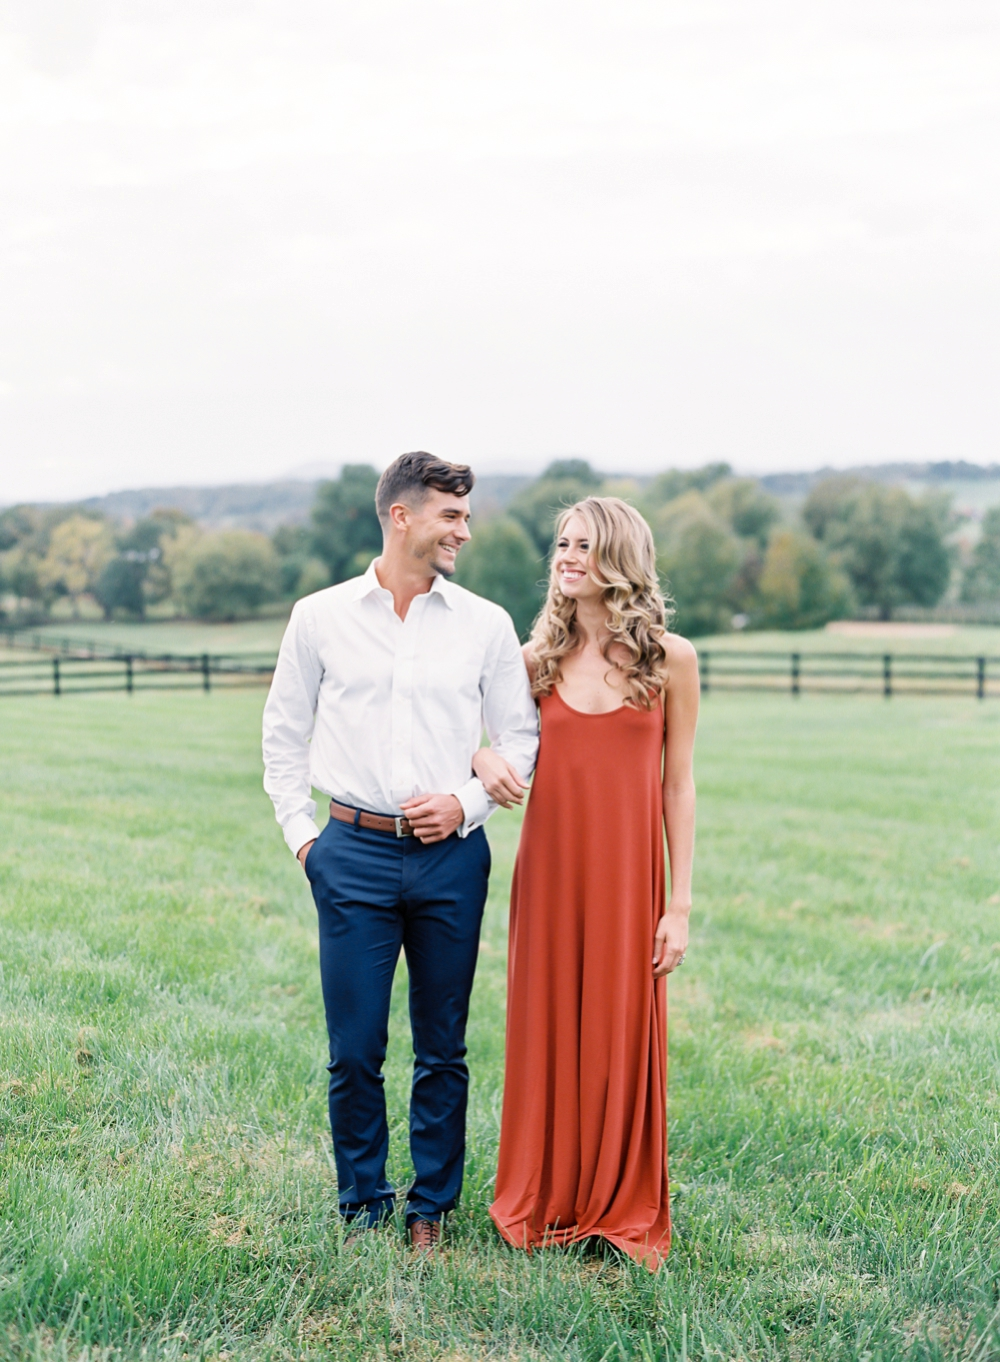 Vicki+Grafton+Photography+Fine+Art+Film+Middleburg+Virginia+Wedding+Photographer_0019.jpg